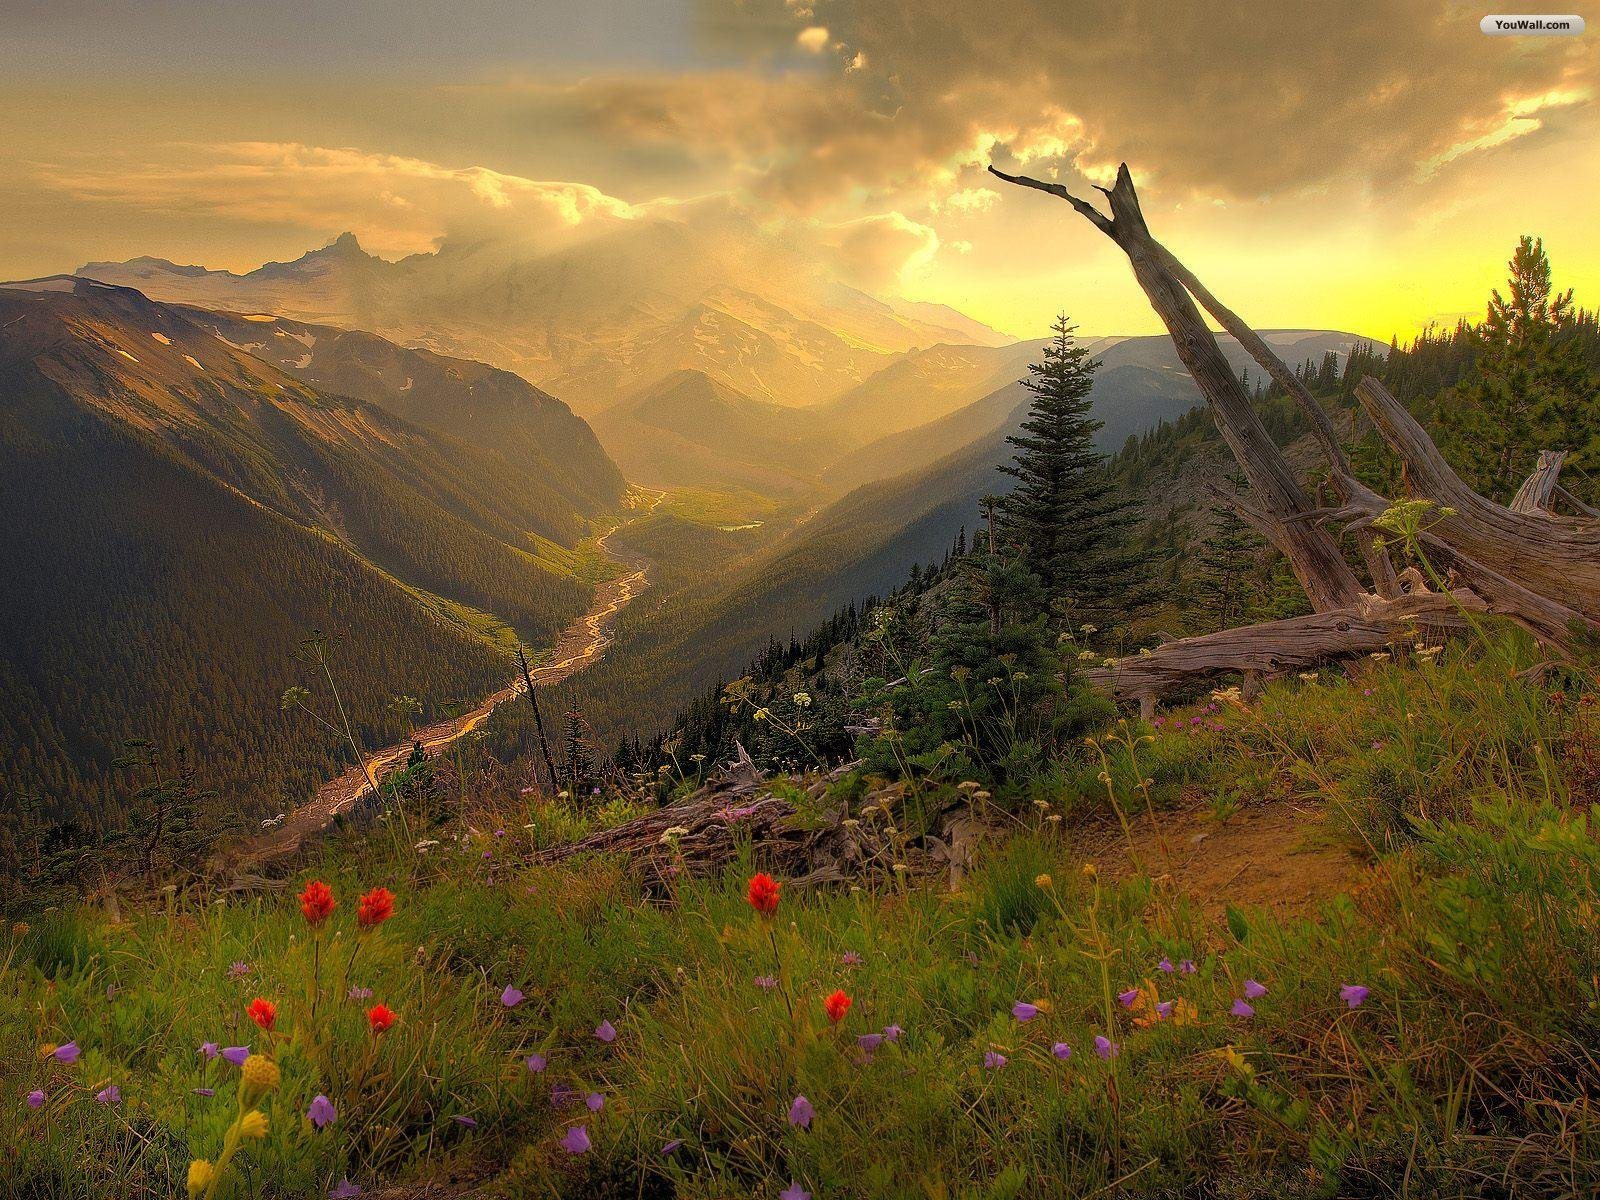 HD Awesome Sunset Mountain Wallpaper 2014 Wallpaper Collection For 1600x1200